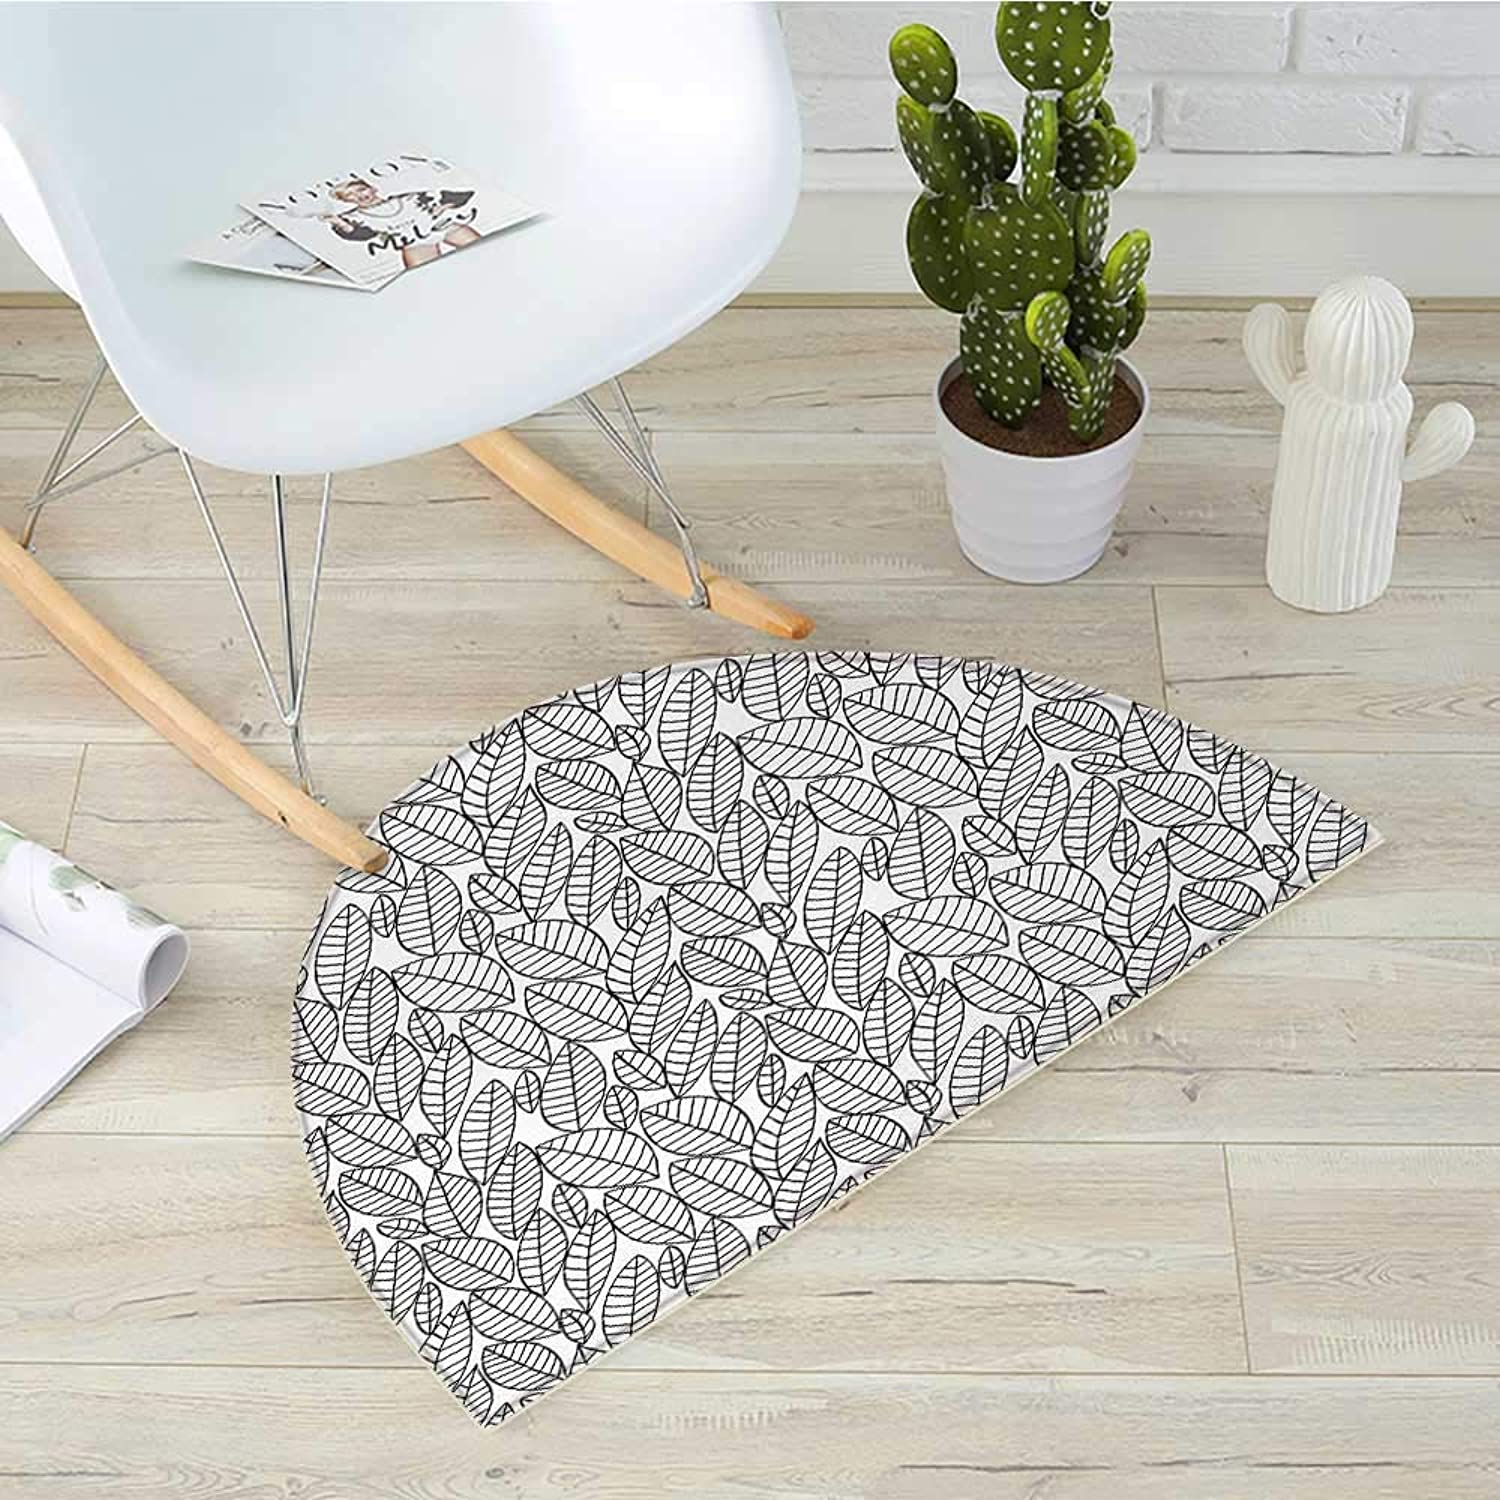 Leaf Half Round Door mats Simple Hand Drawn Leaves Botany and Ecology Theme in Monochrome Style Composition Bathroom Mat H 43.3  xD 64.9  Black White